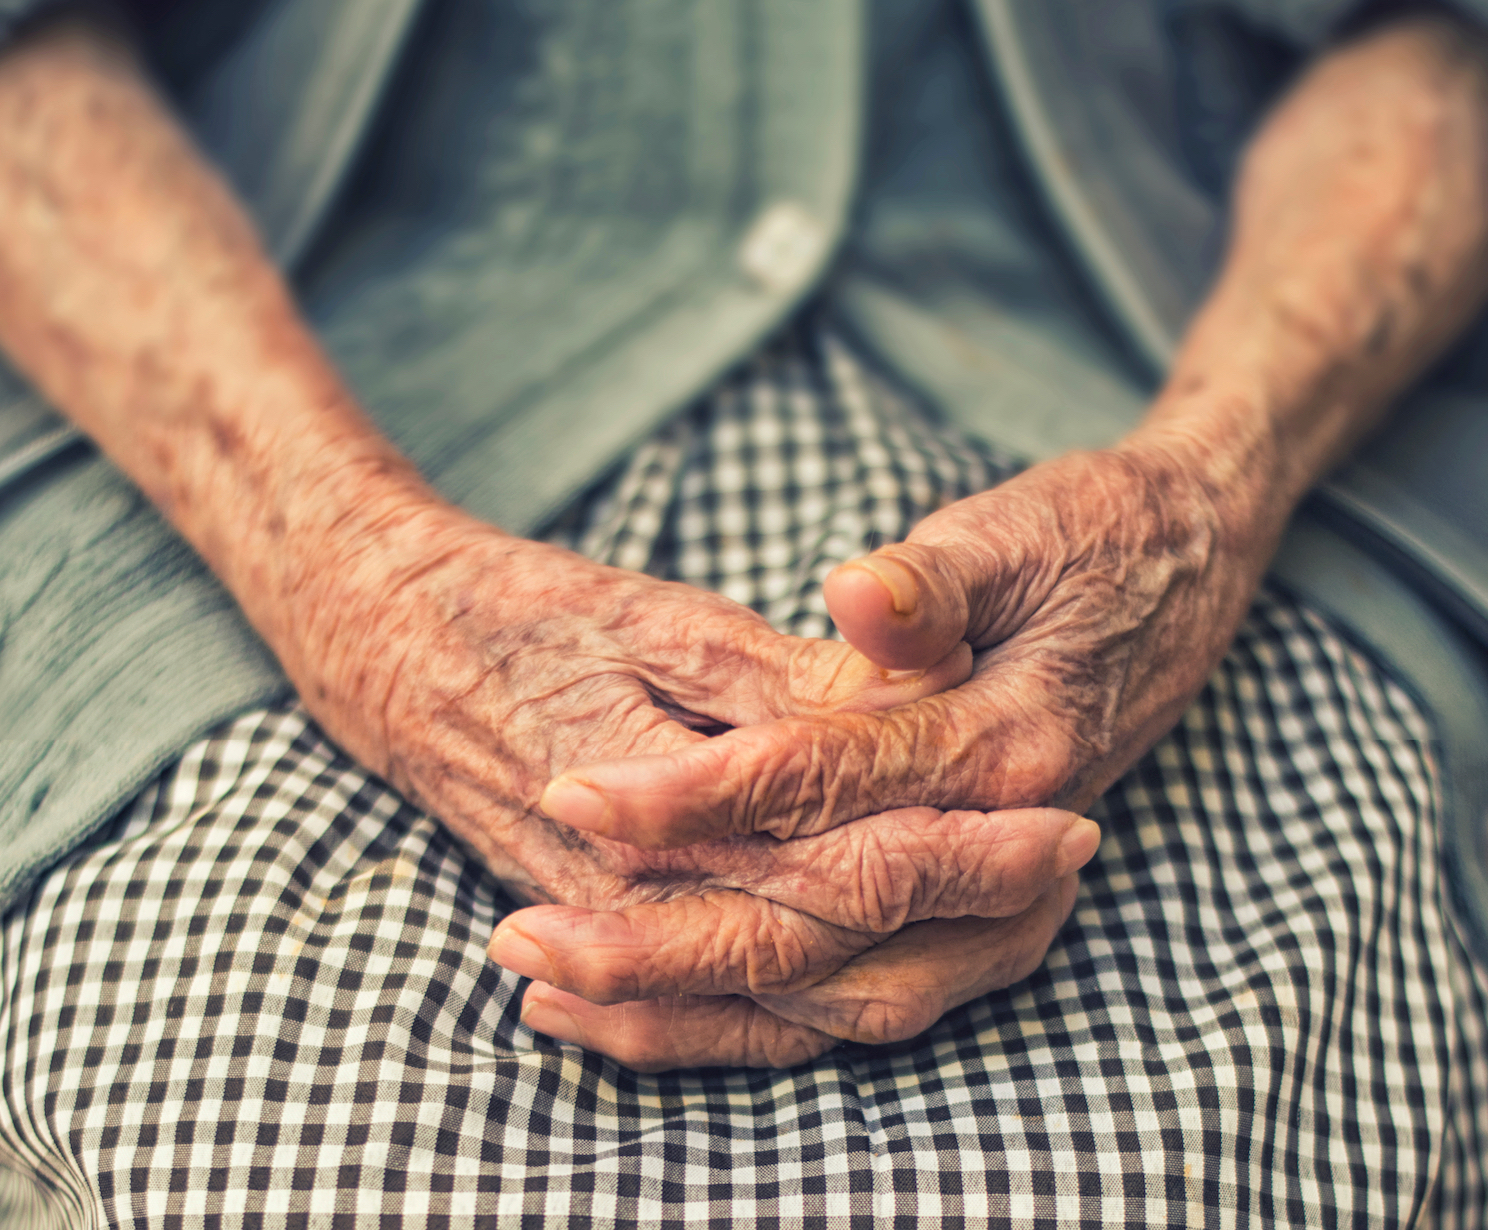 ethics in the elderly population A huge global study on driverless car ethics found the elderly are expendable oliver smith forbes staff  4 million people took part by answering ethical questions in moral machine's many .